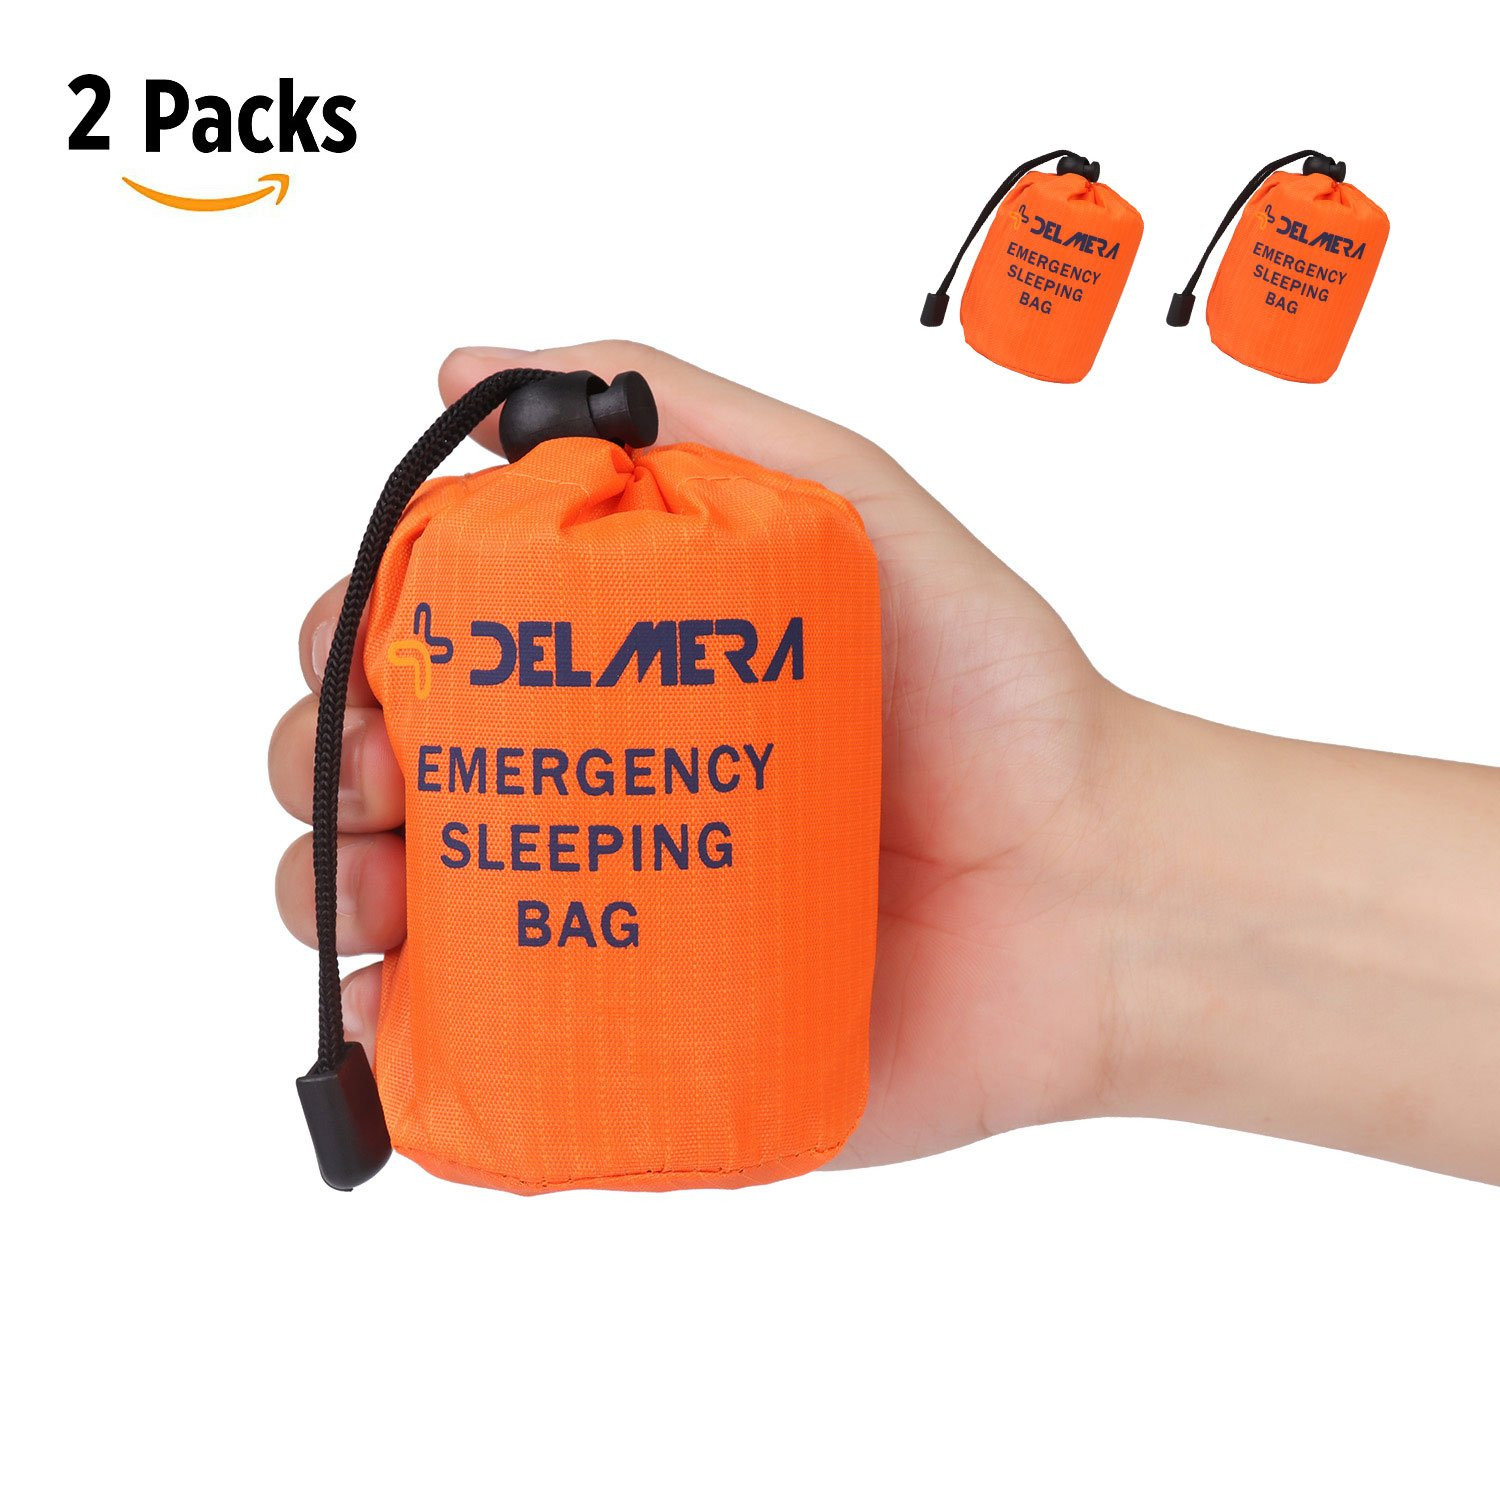 Camping & Hiking Emergency Survival Sleeping Bag Easy Heat Insulation Compact Outdoor First Aid Gear Waterproof Bivy Sack For Camping Hiking Ba